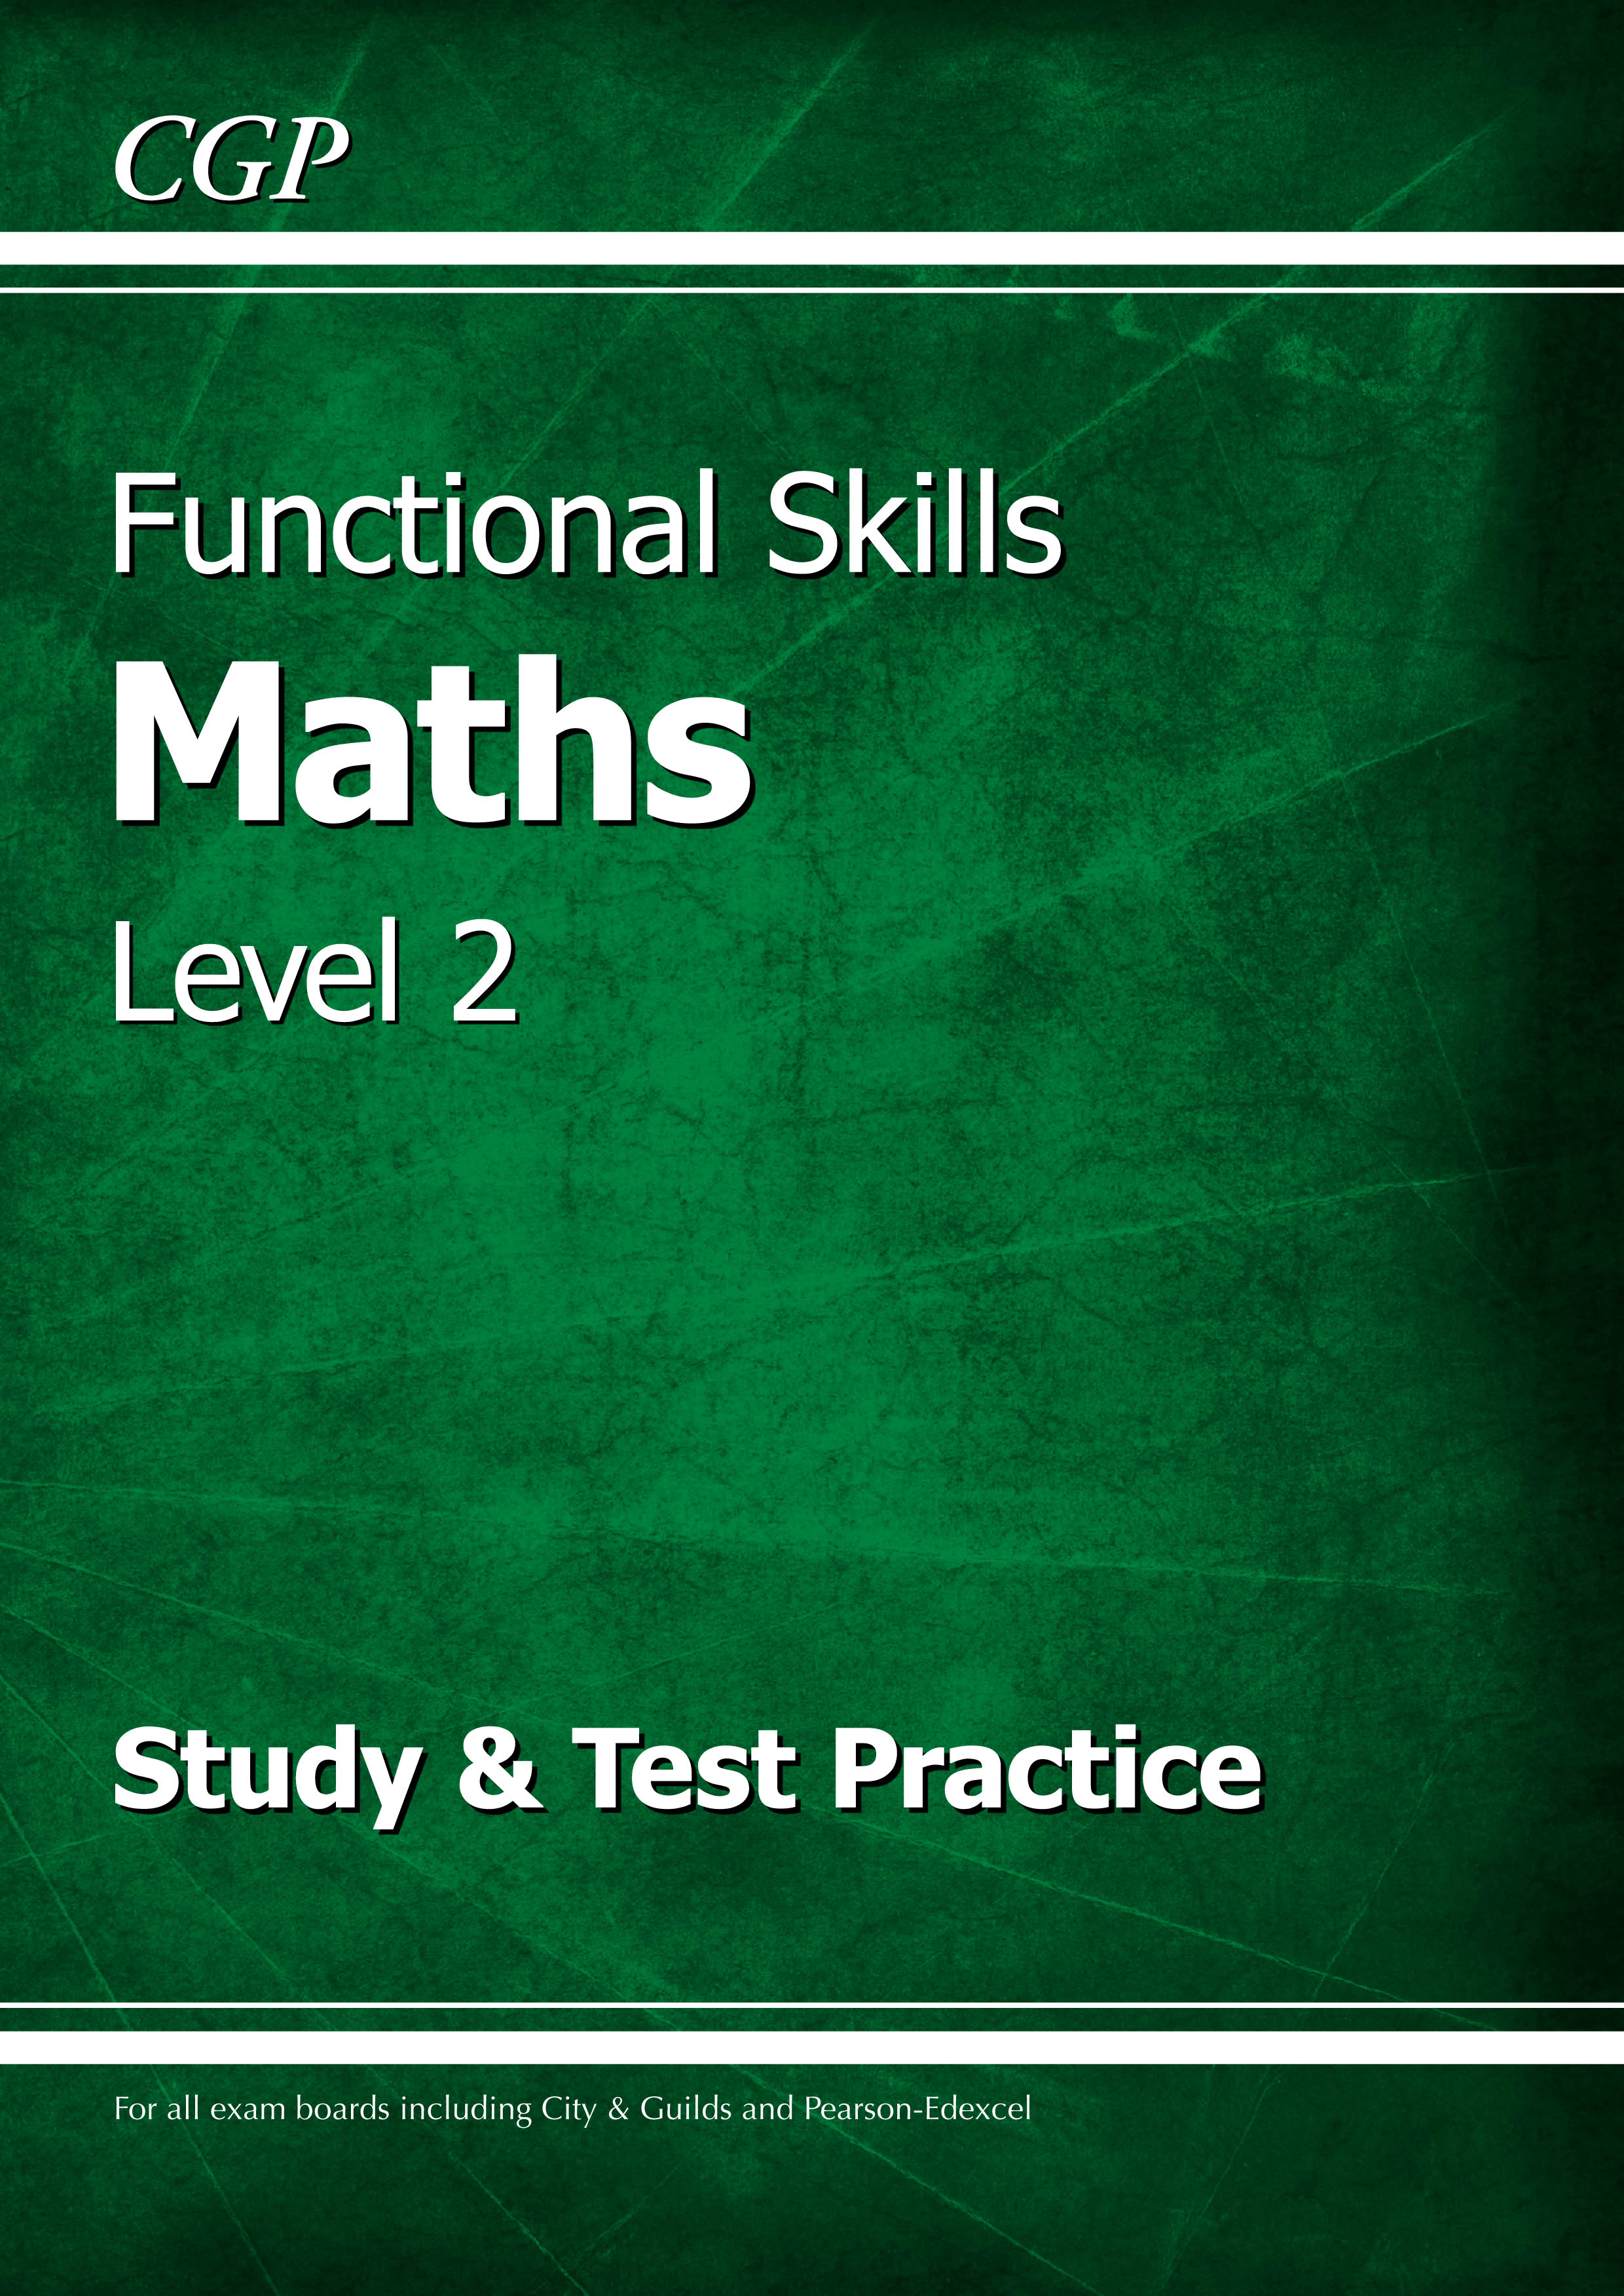 M2SRA2DK - Functional Skills Maths Level 2 - Study & Test Practice